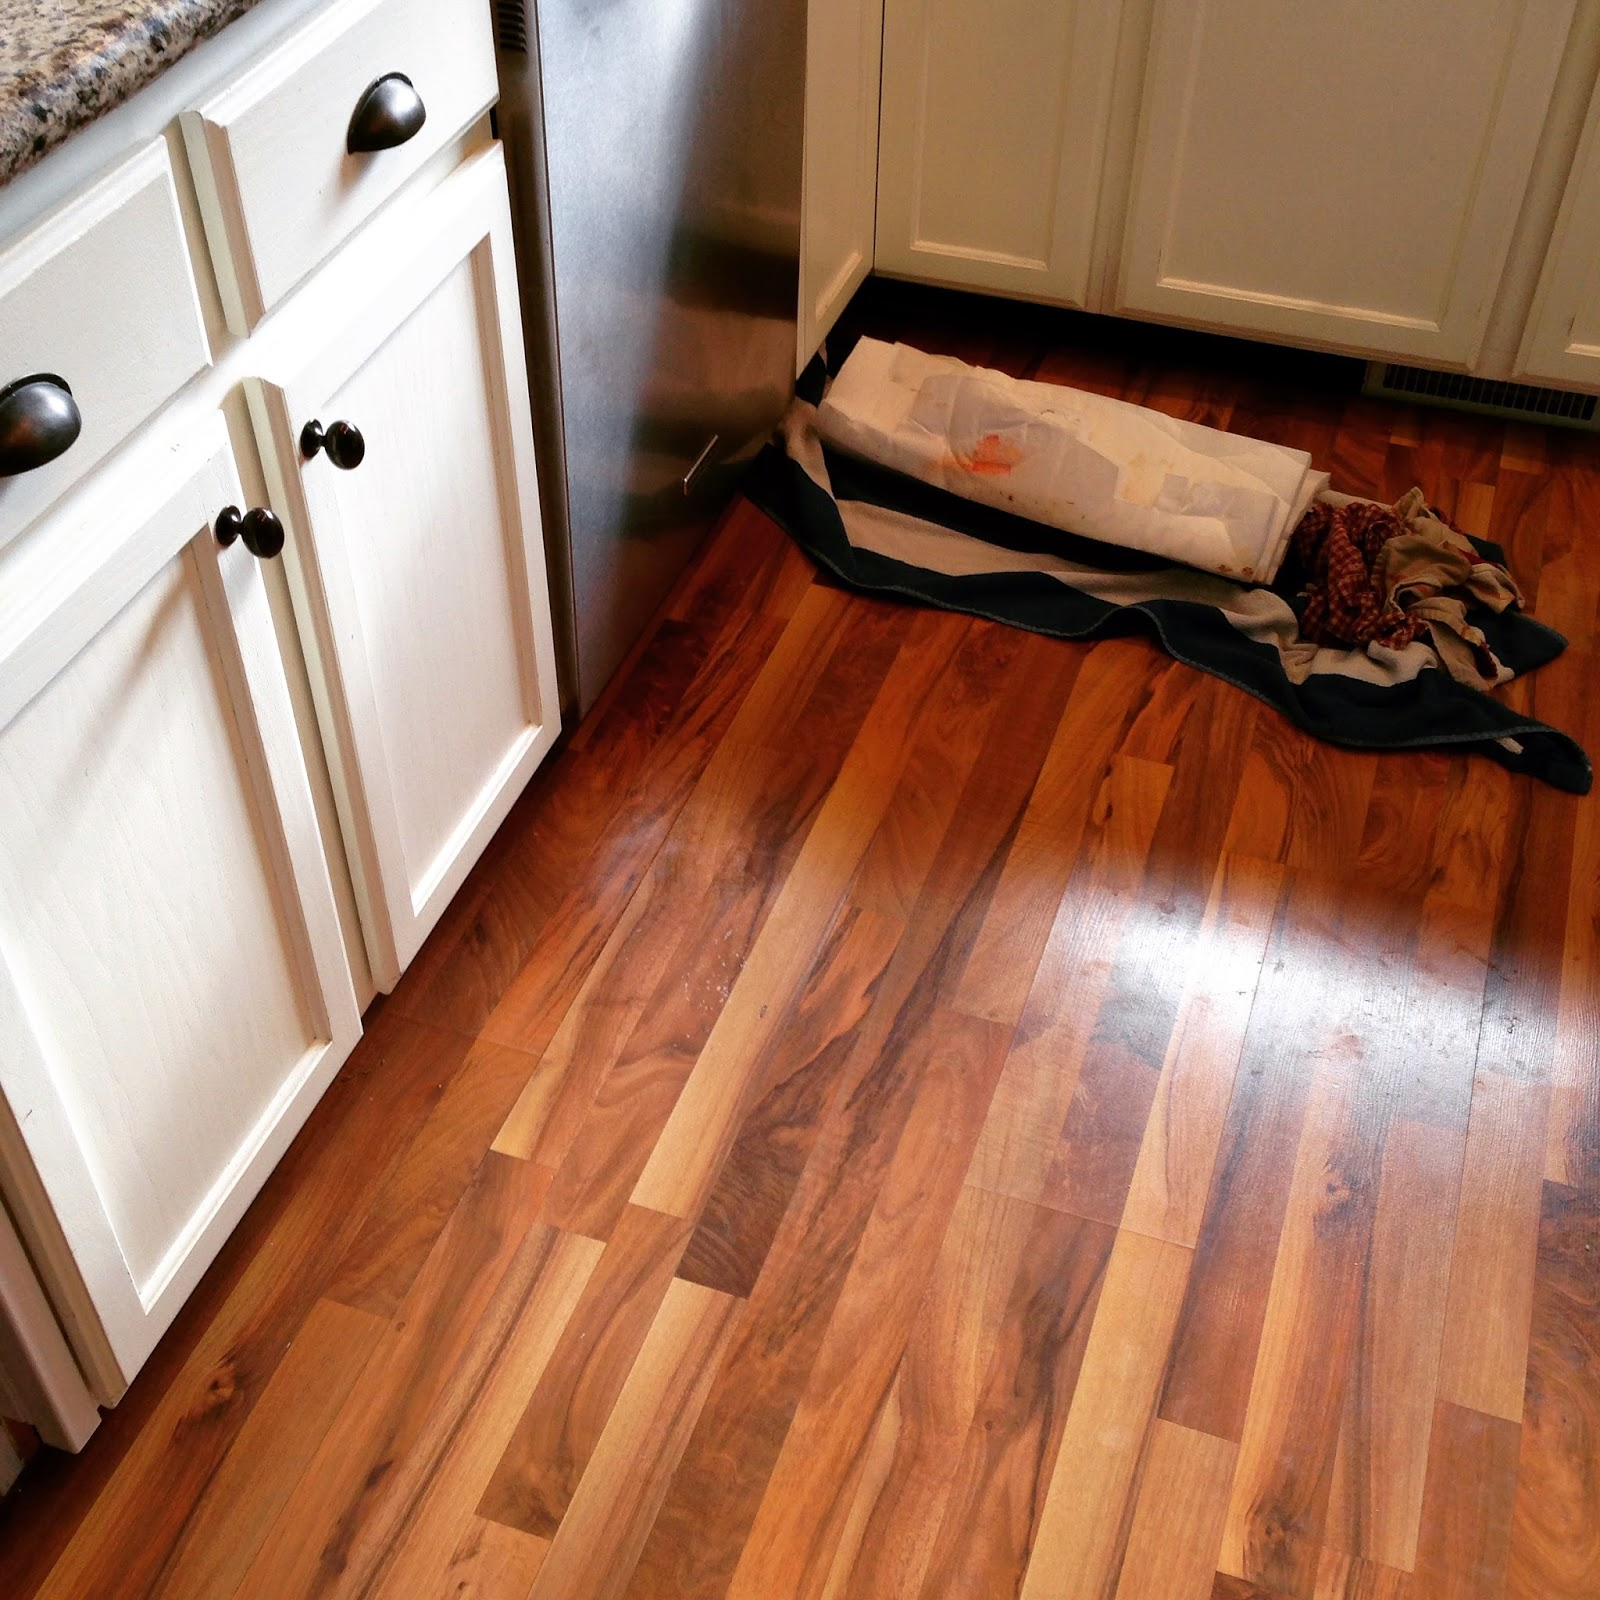 Flooded Kitchen Floor: Where My Wild Things Are: The Story Of When Our Dishwasher